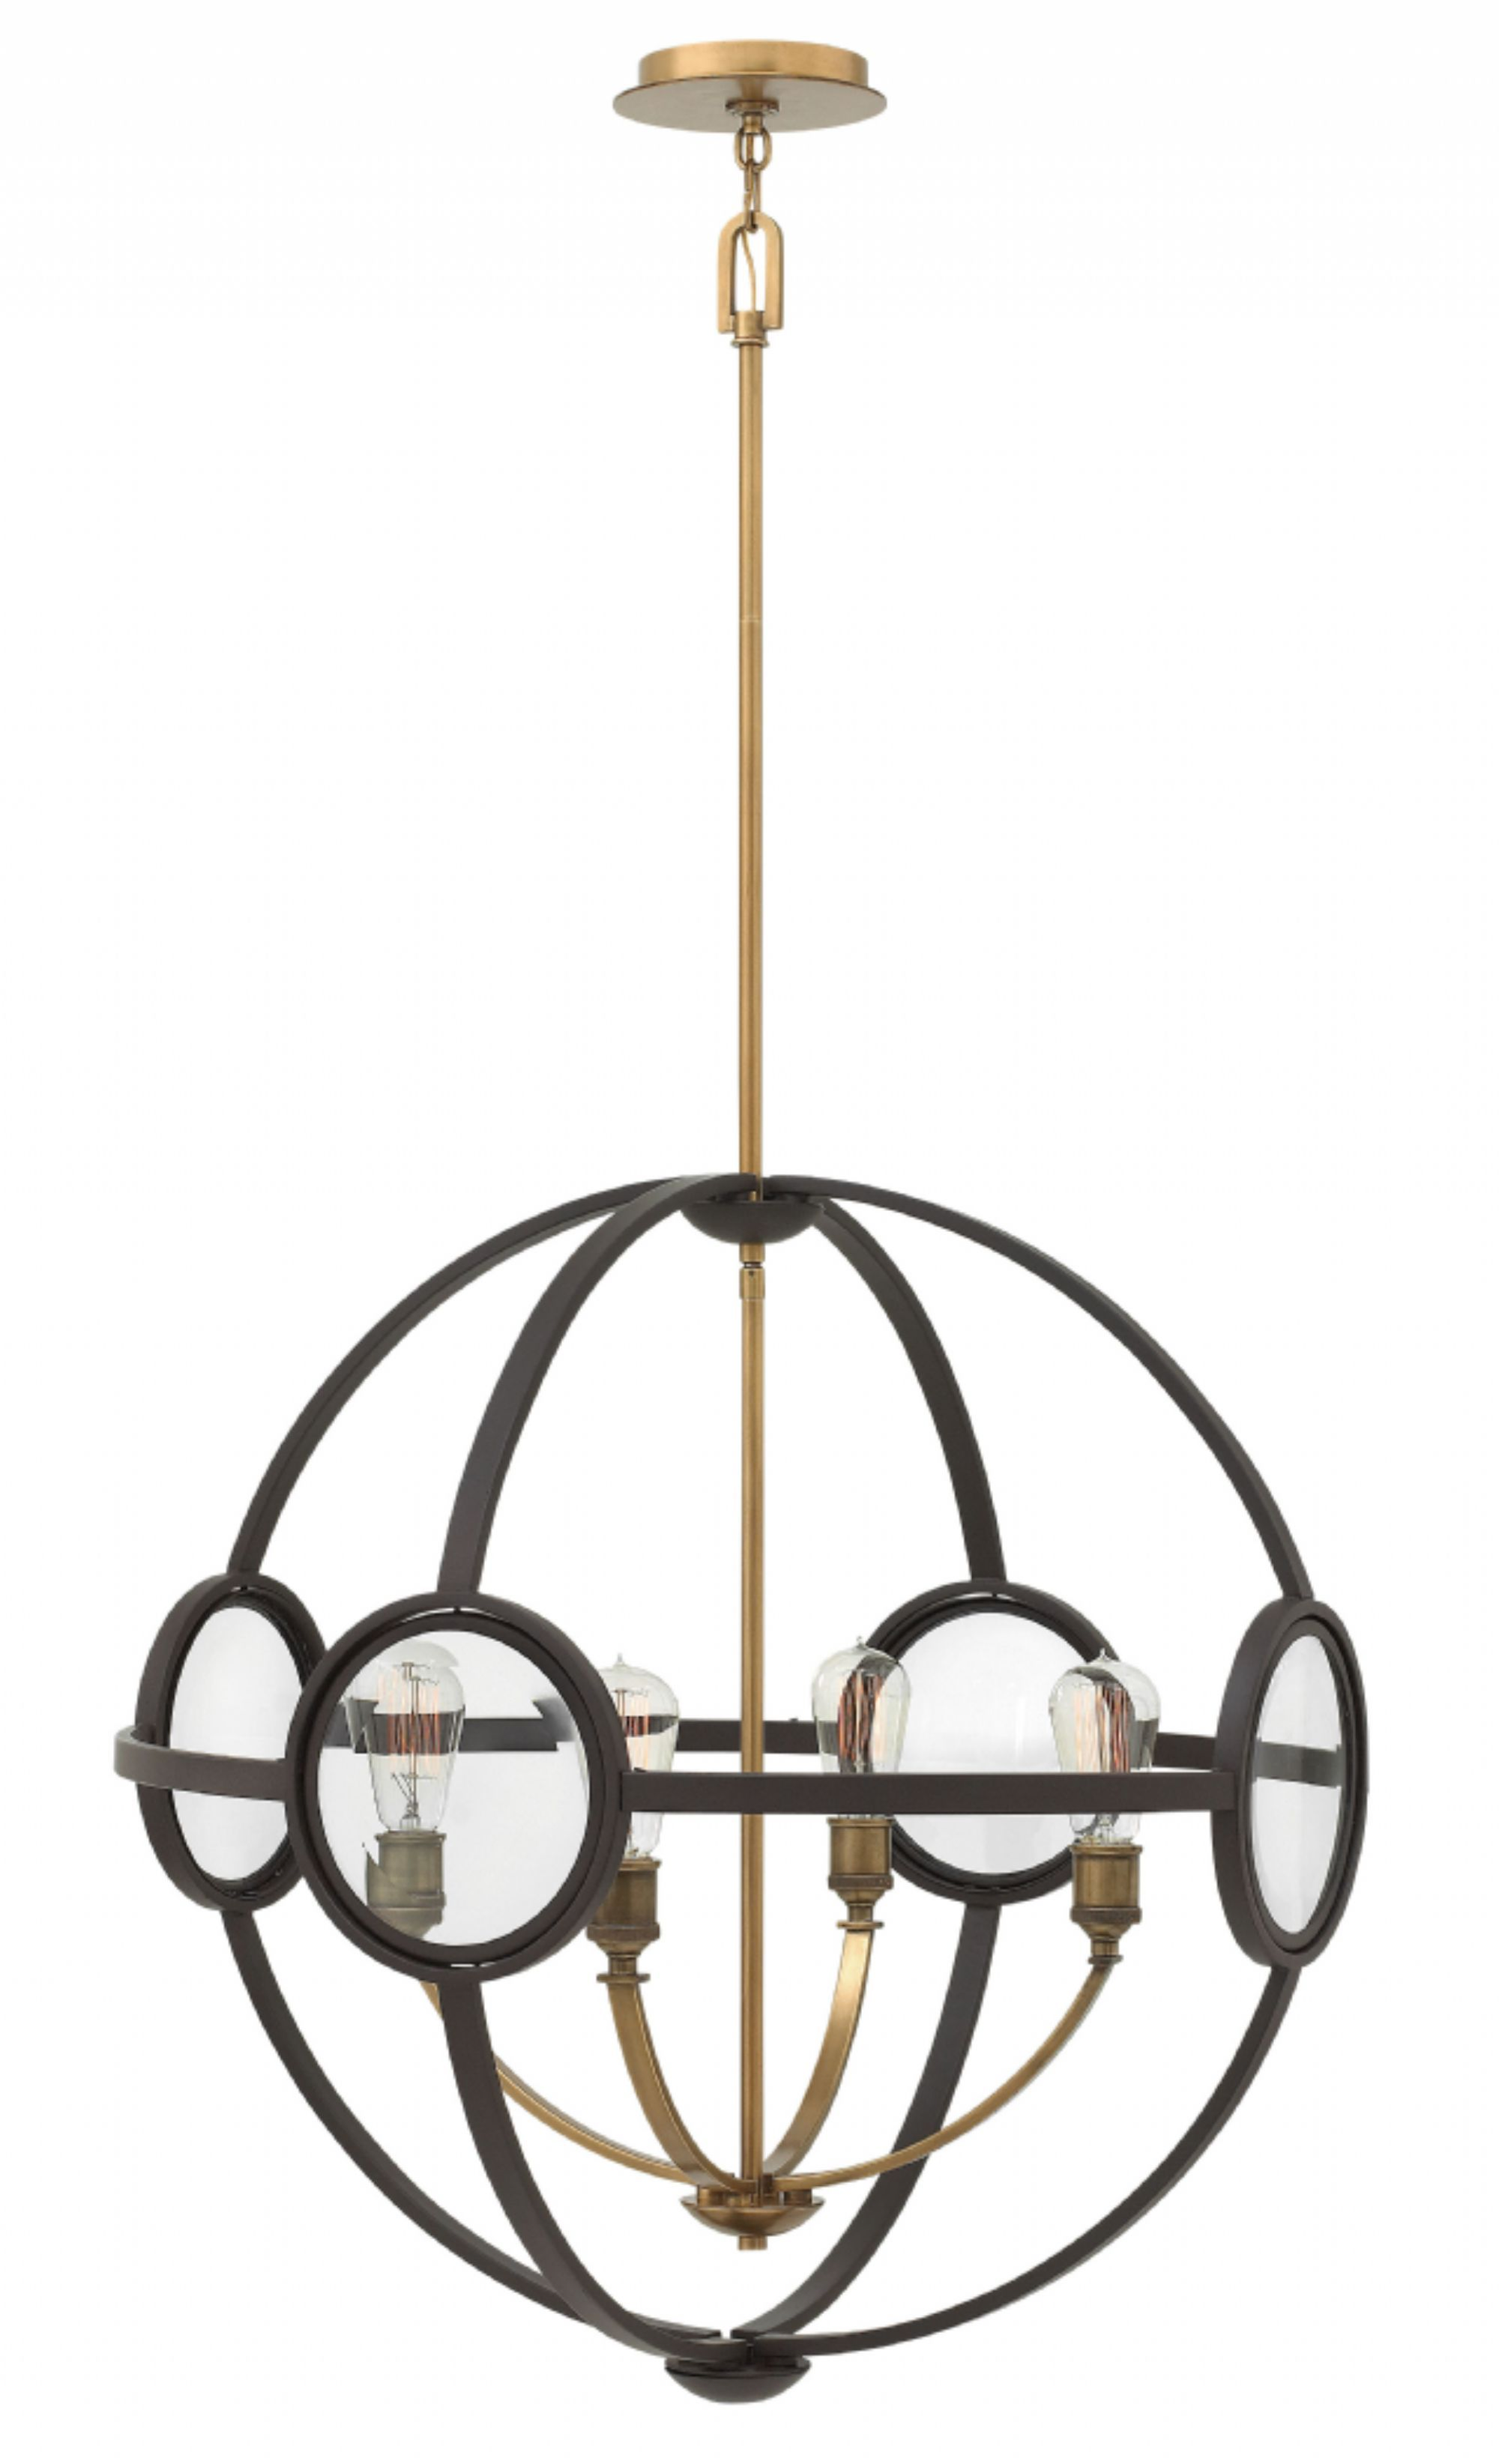 This Fixture Combines Two Major Trends Mixed Metals And Orb Shaped Lighting